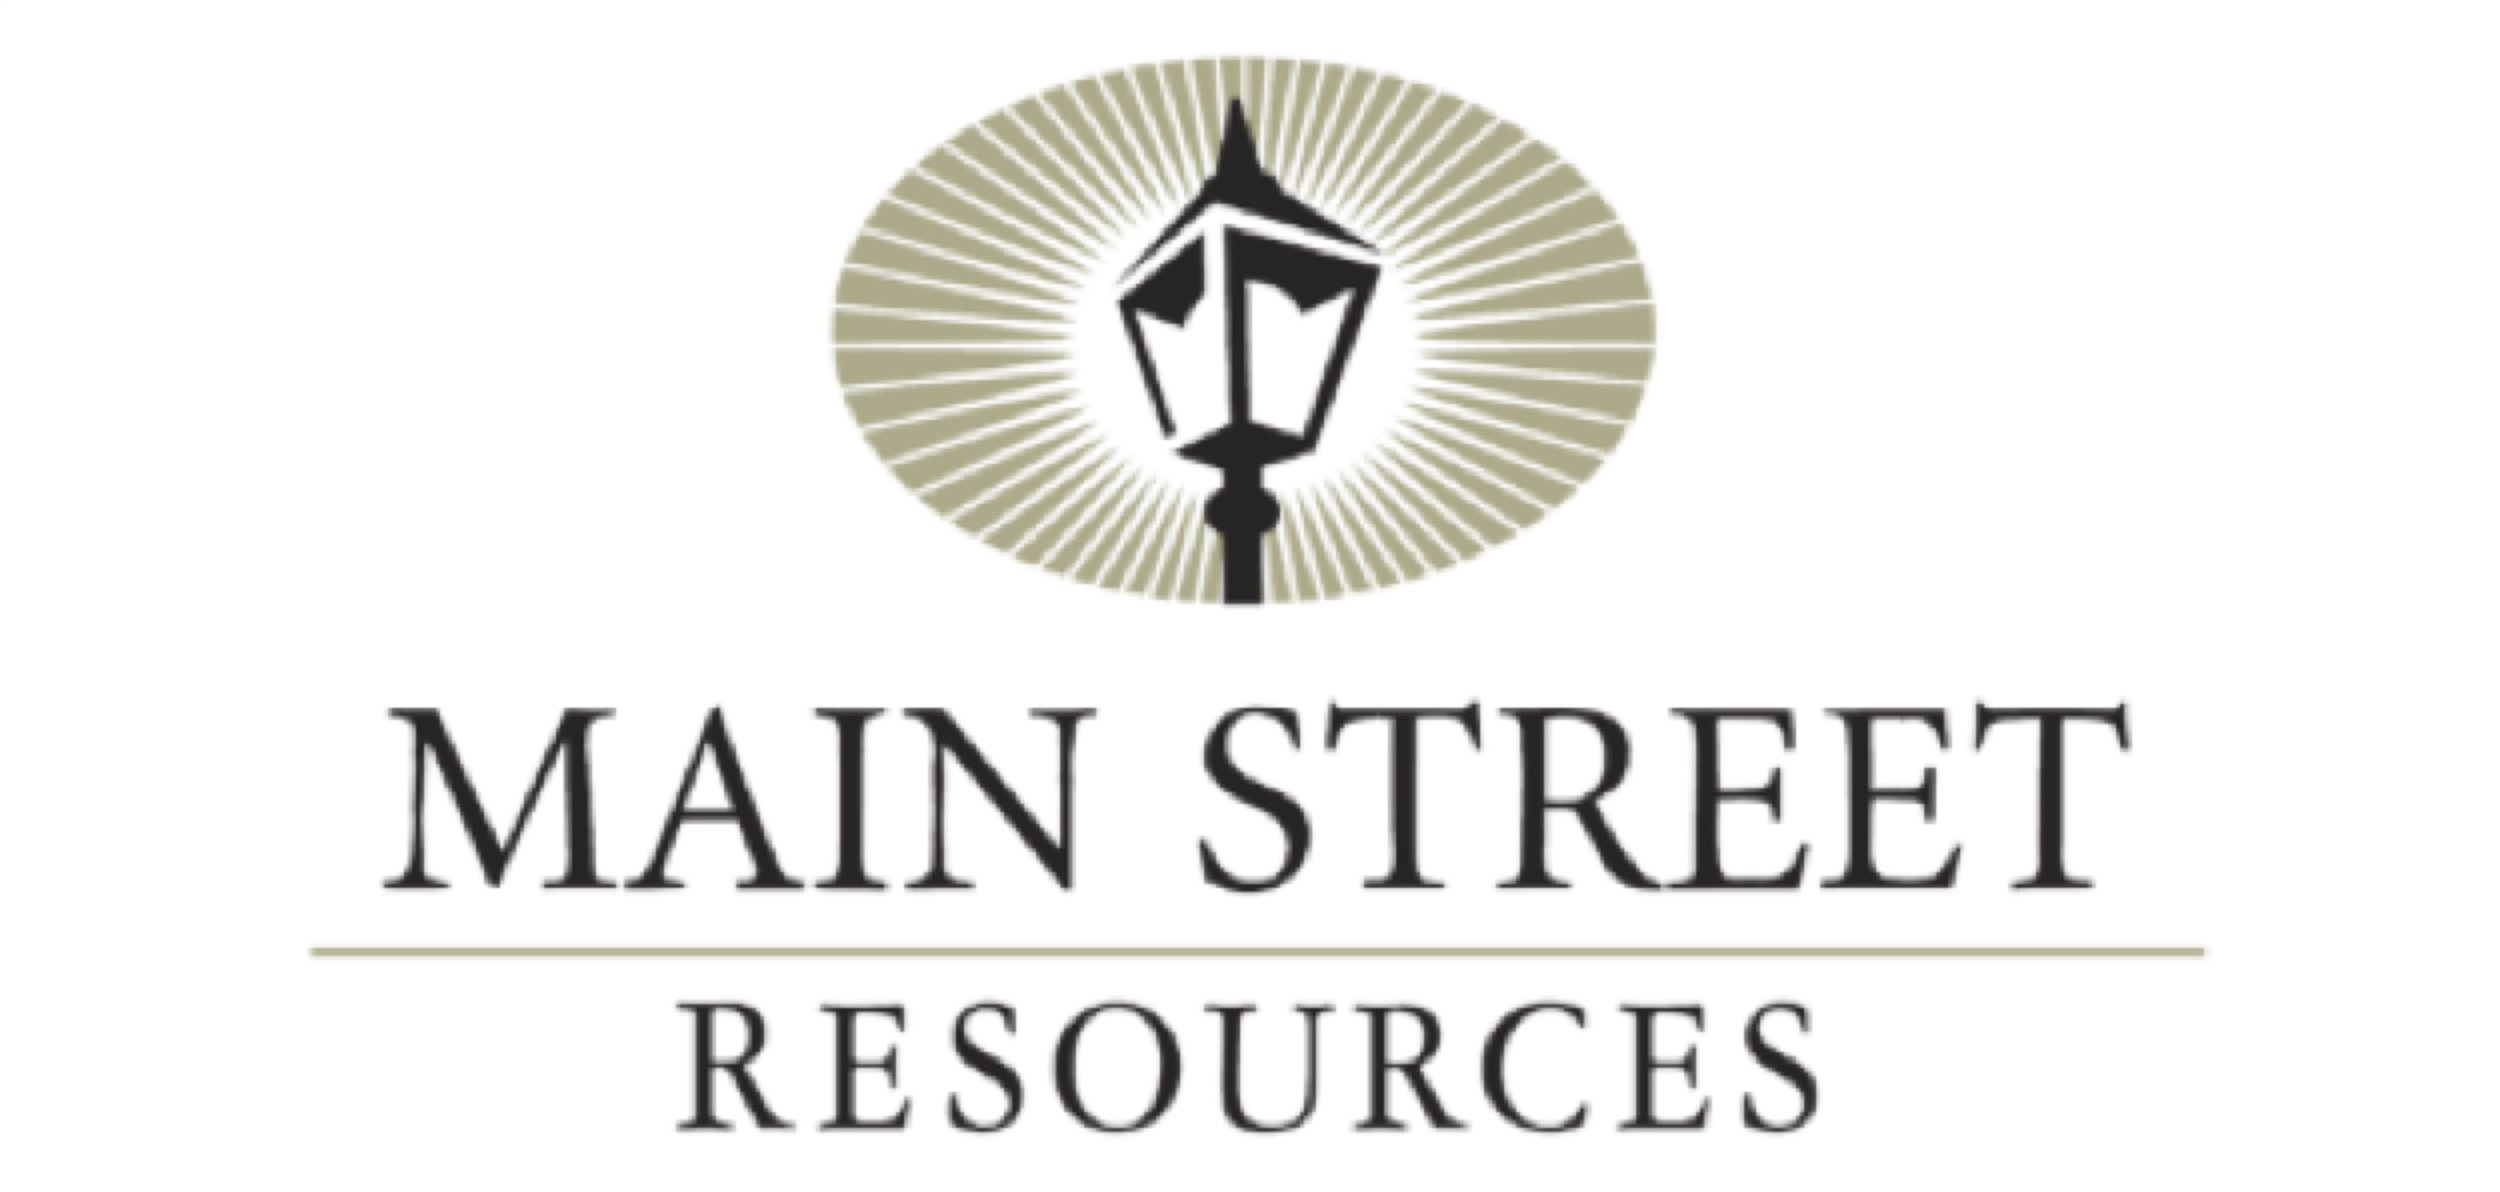 Main Street Resources logo.jpg